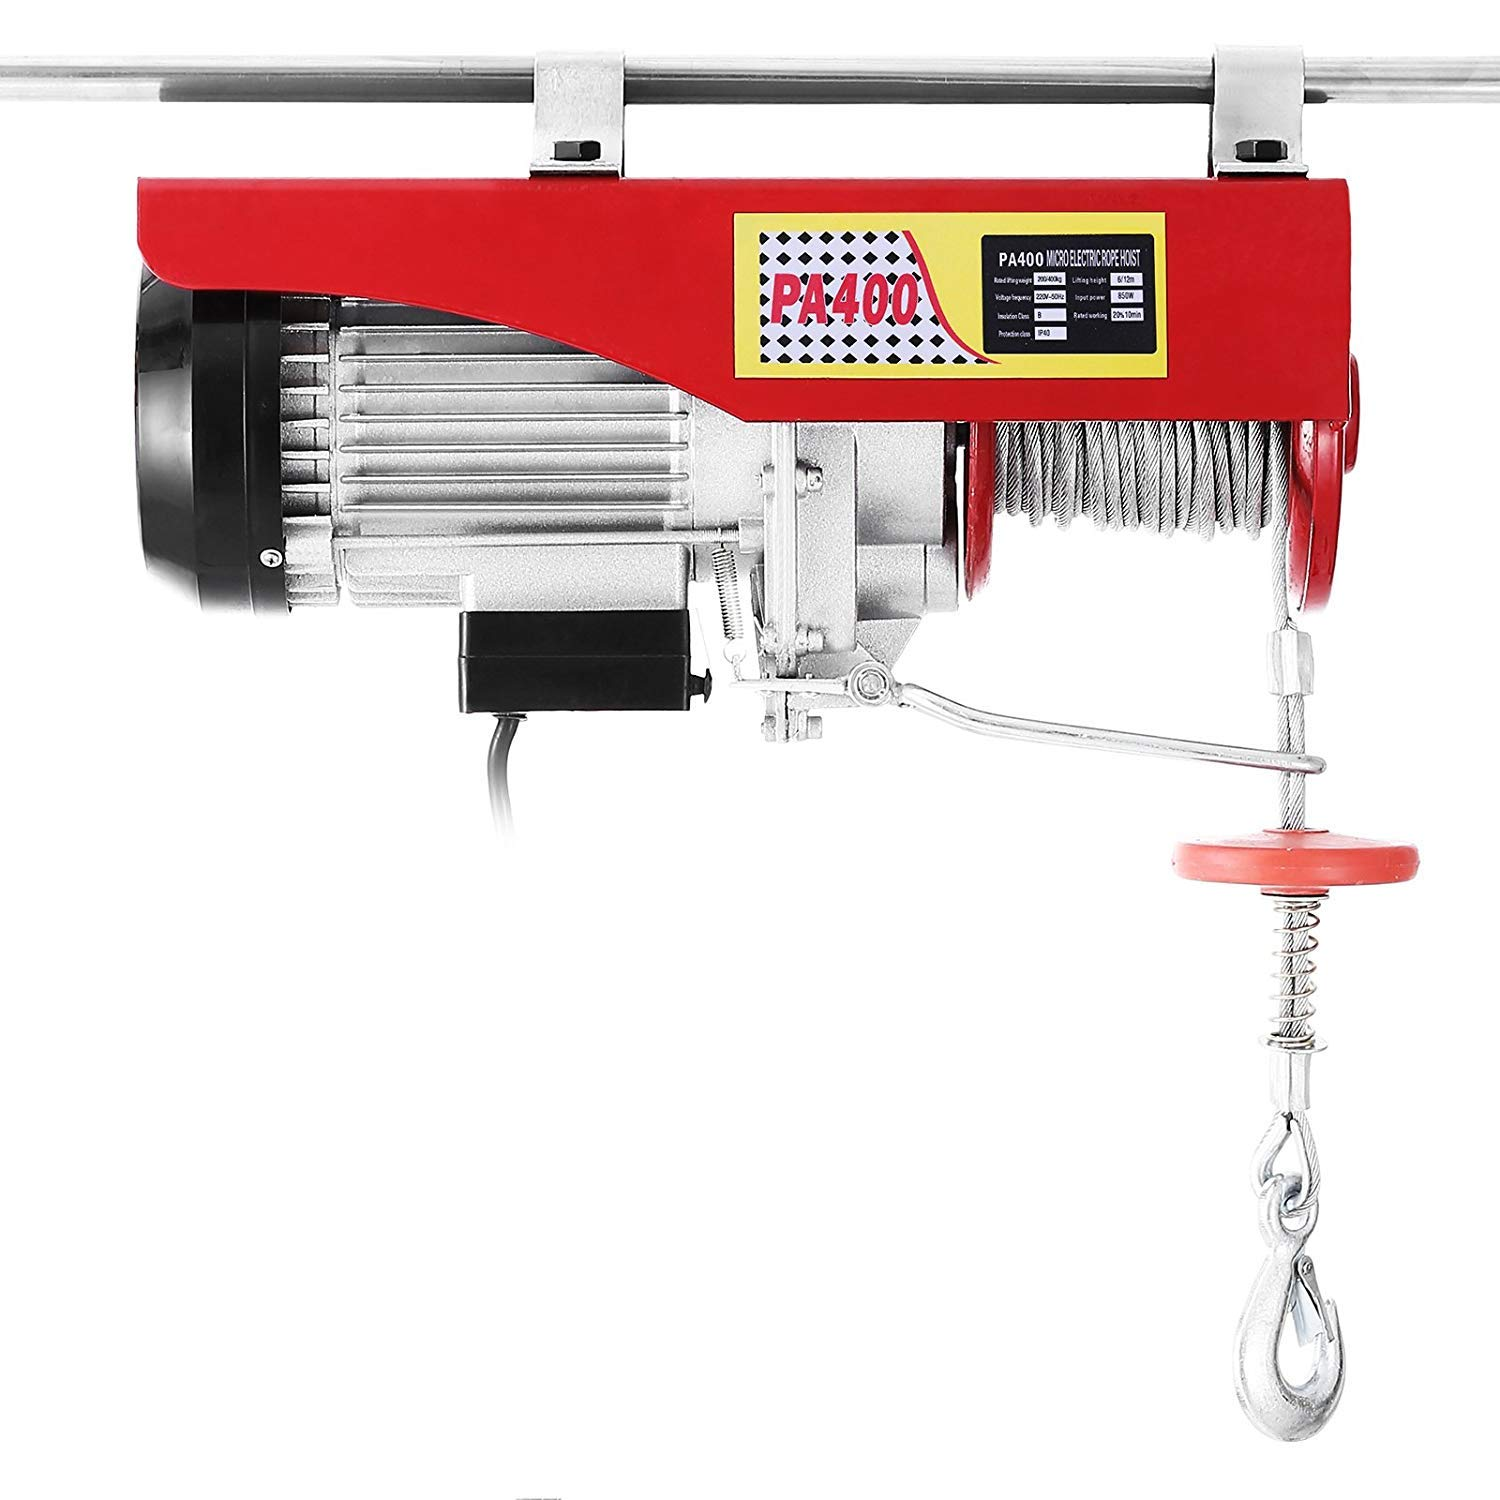 Morffa 600KG lectric Hoist Lift 1320LBS Overhead Electric Hoist Electric Wire Hoist Remote Control Garage Auto Shop Overhead Lift (1320LBS)